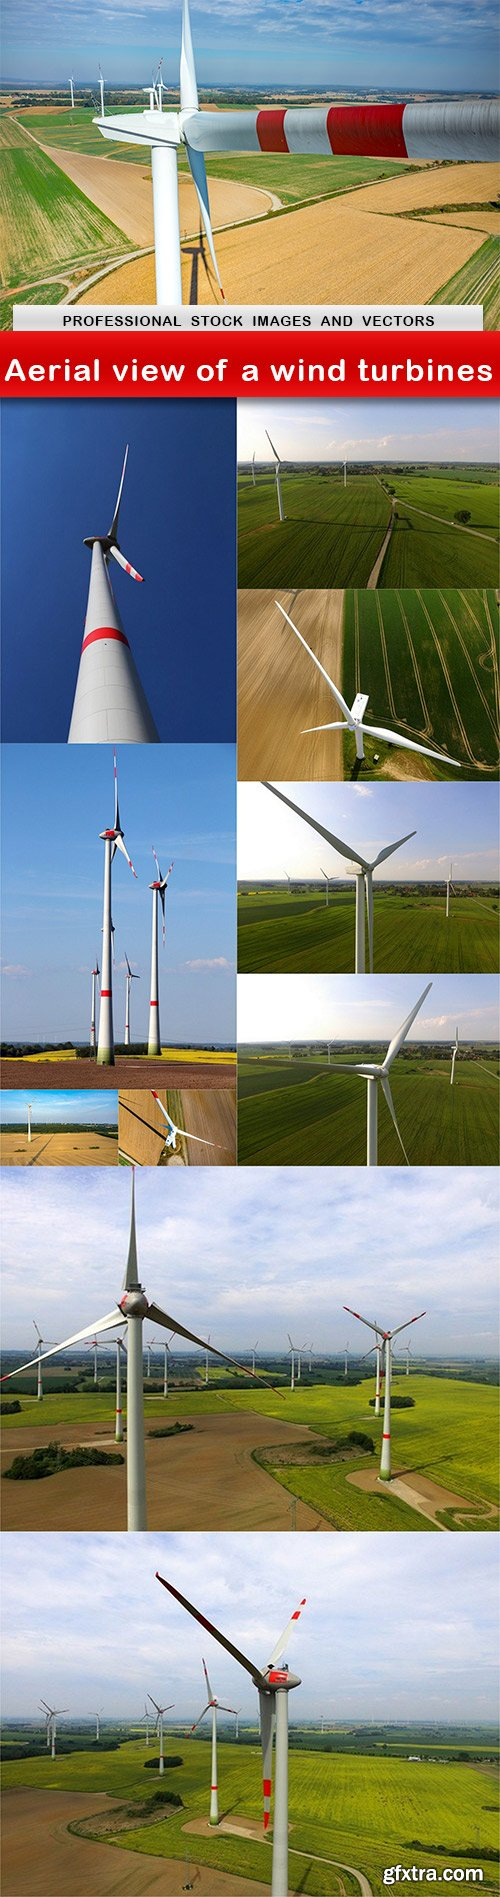 Aerial view of a wind turbines - 11 UHQ JPEG